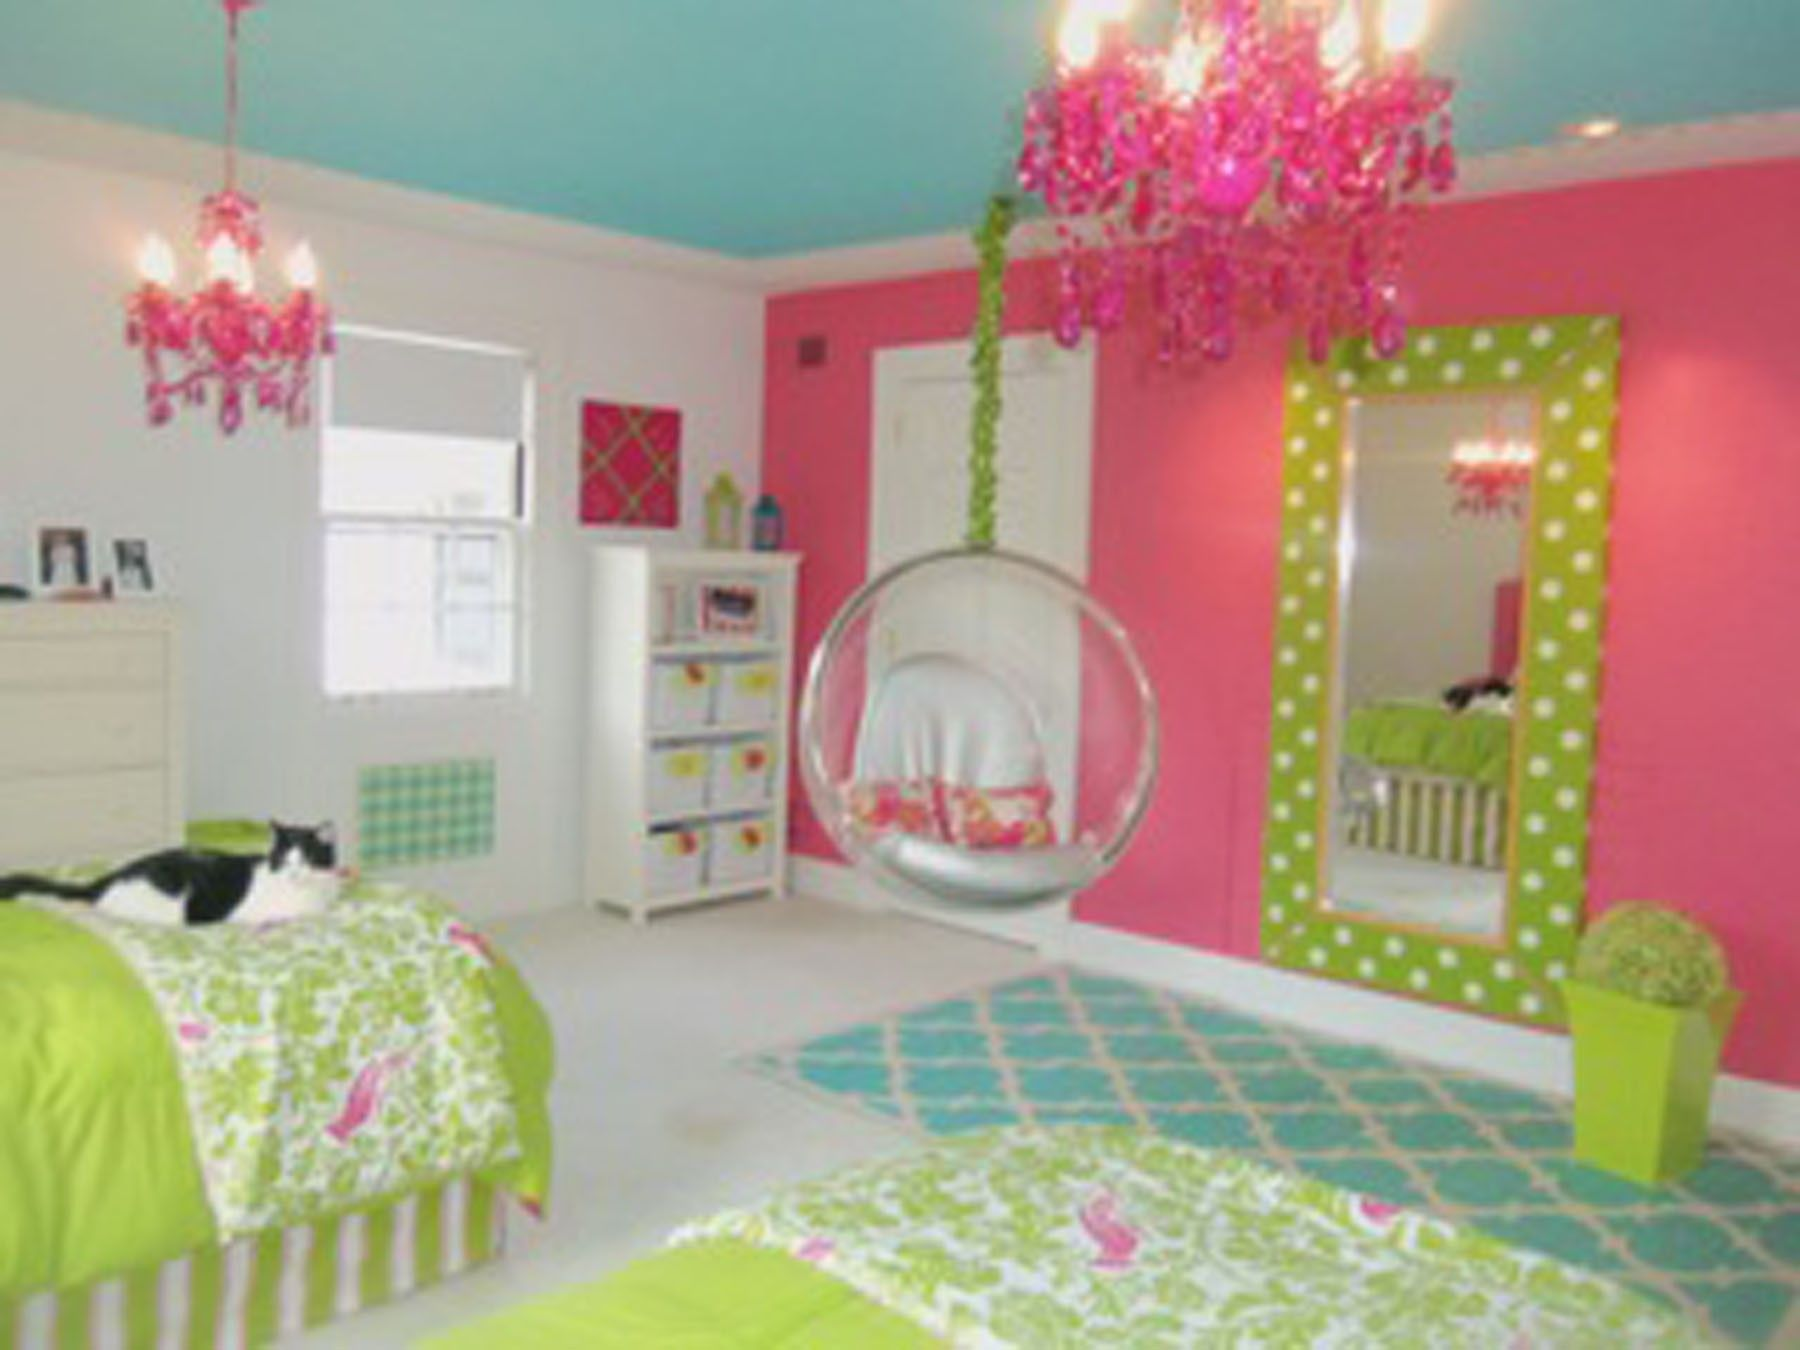 Teen bedroom decor green - Chic Tween Bedroom Ideas For Teenage Girl With White Wooden